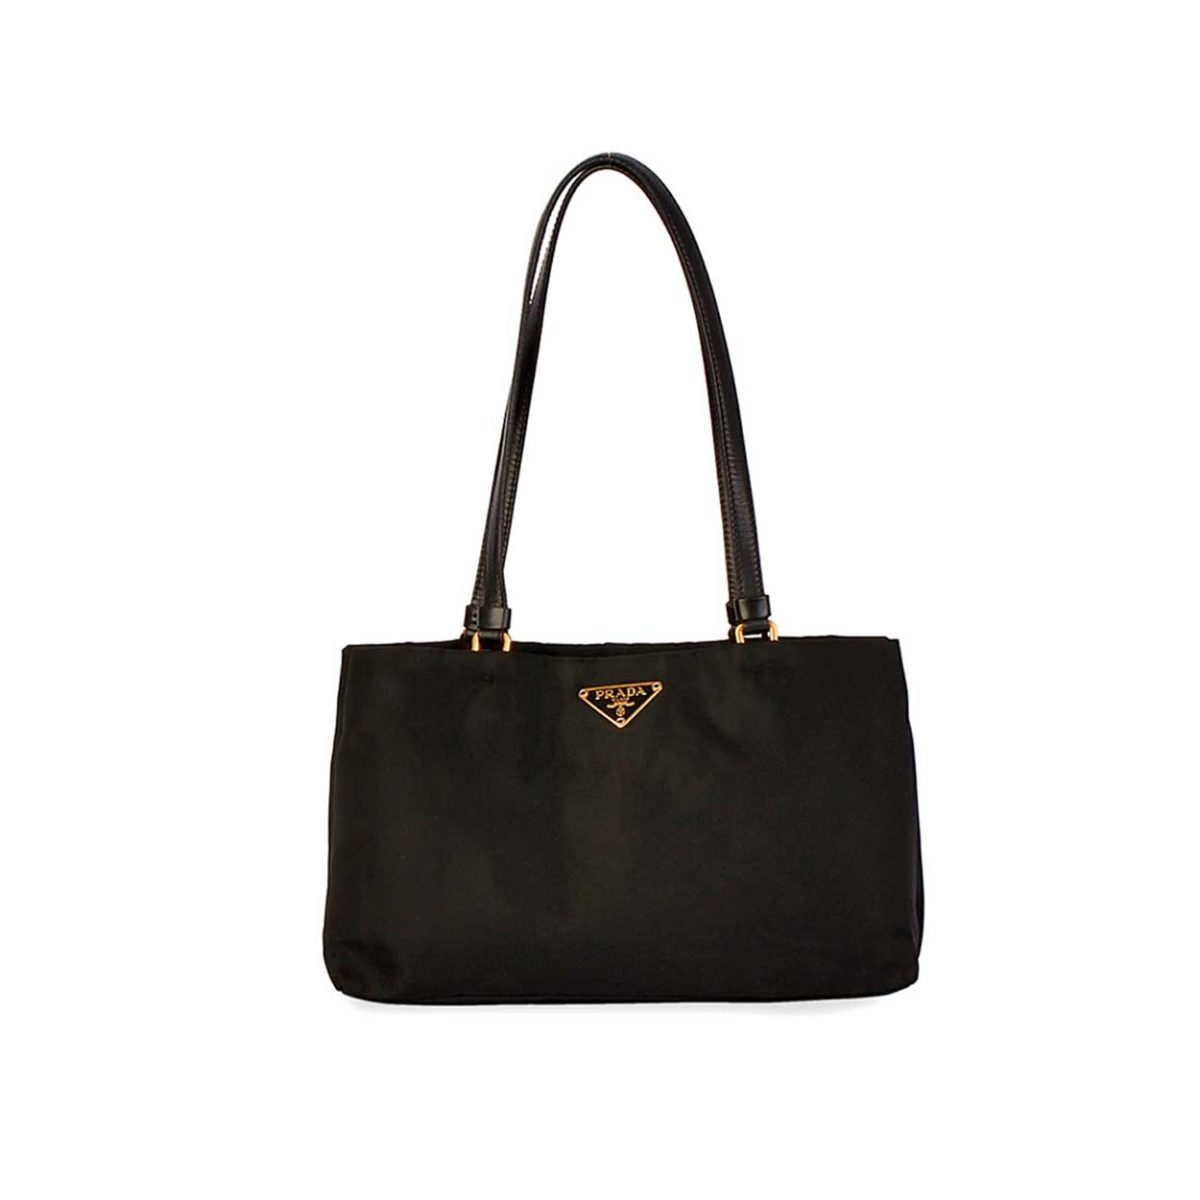 Prada Tessuto Sport Nylon Bag Black 365 00 255 50 Loading